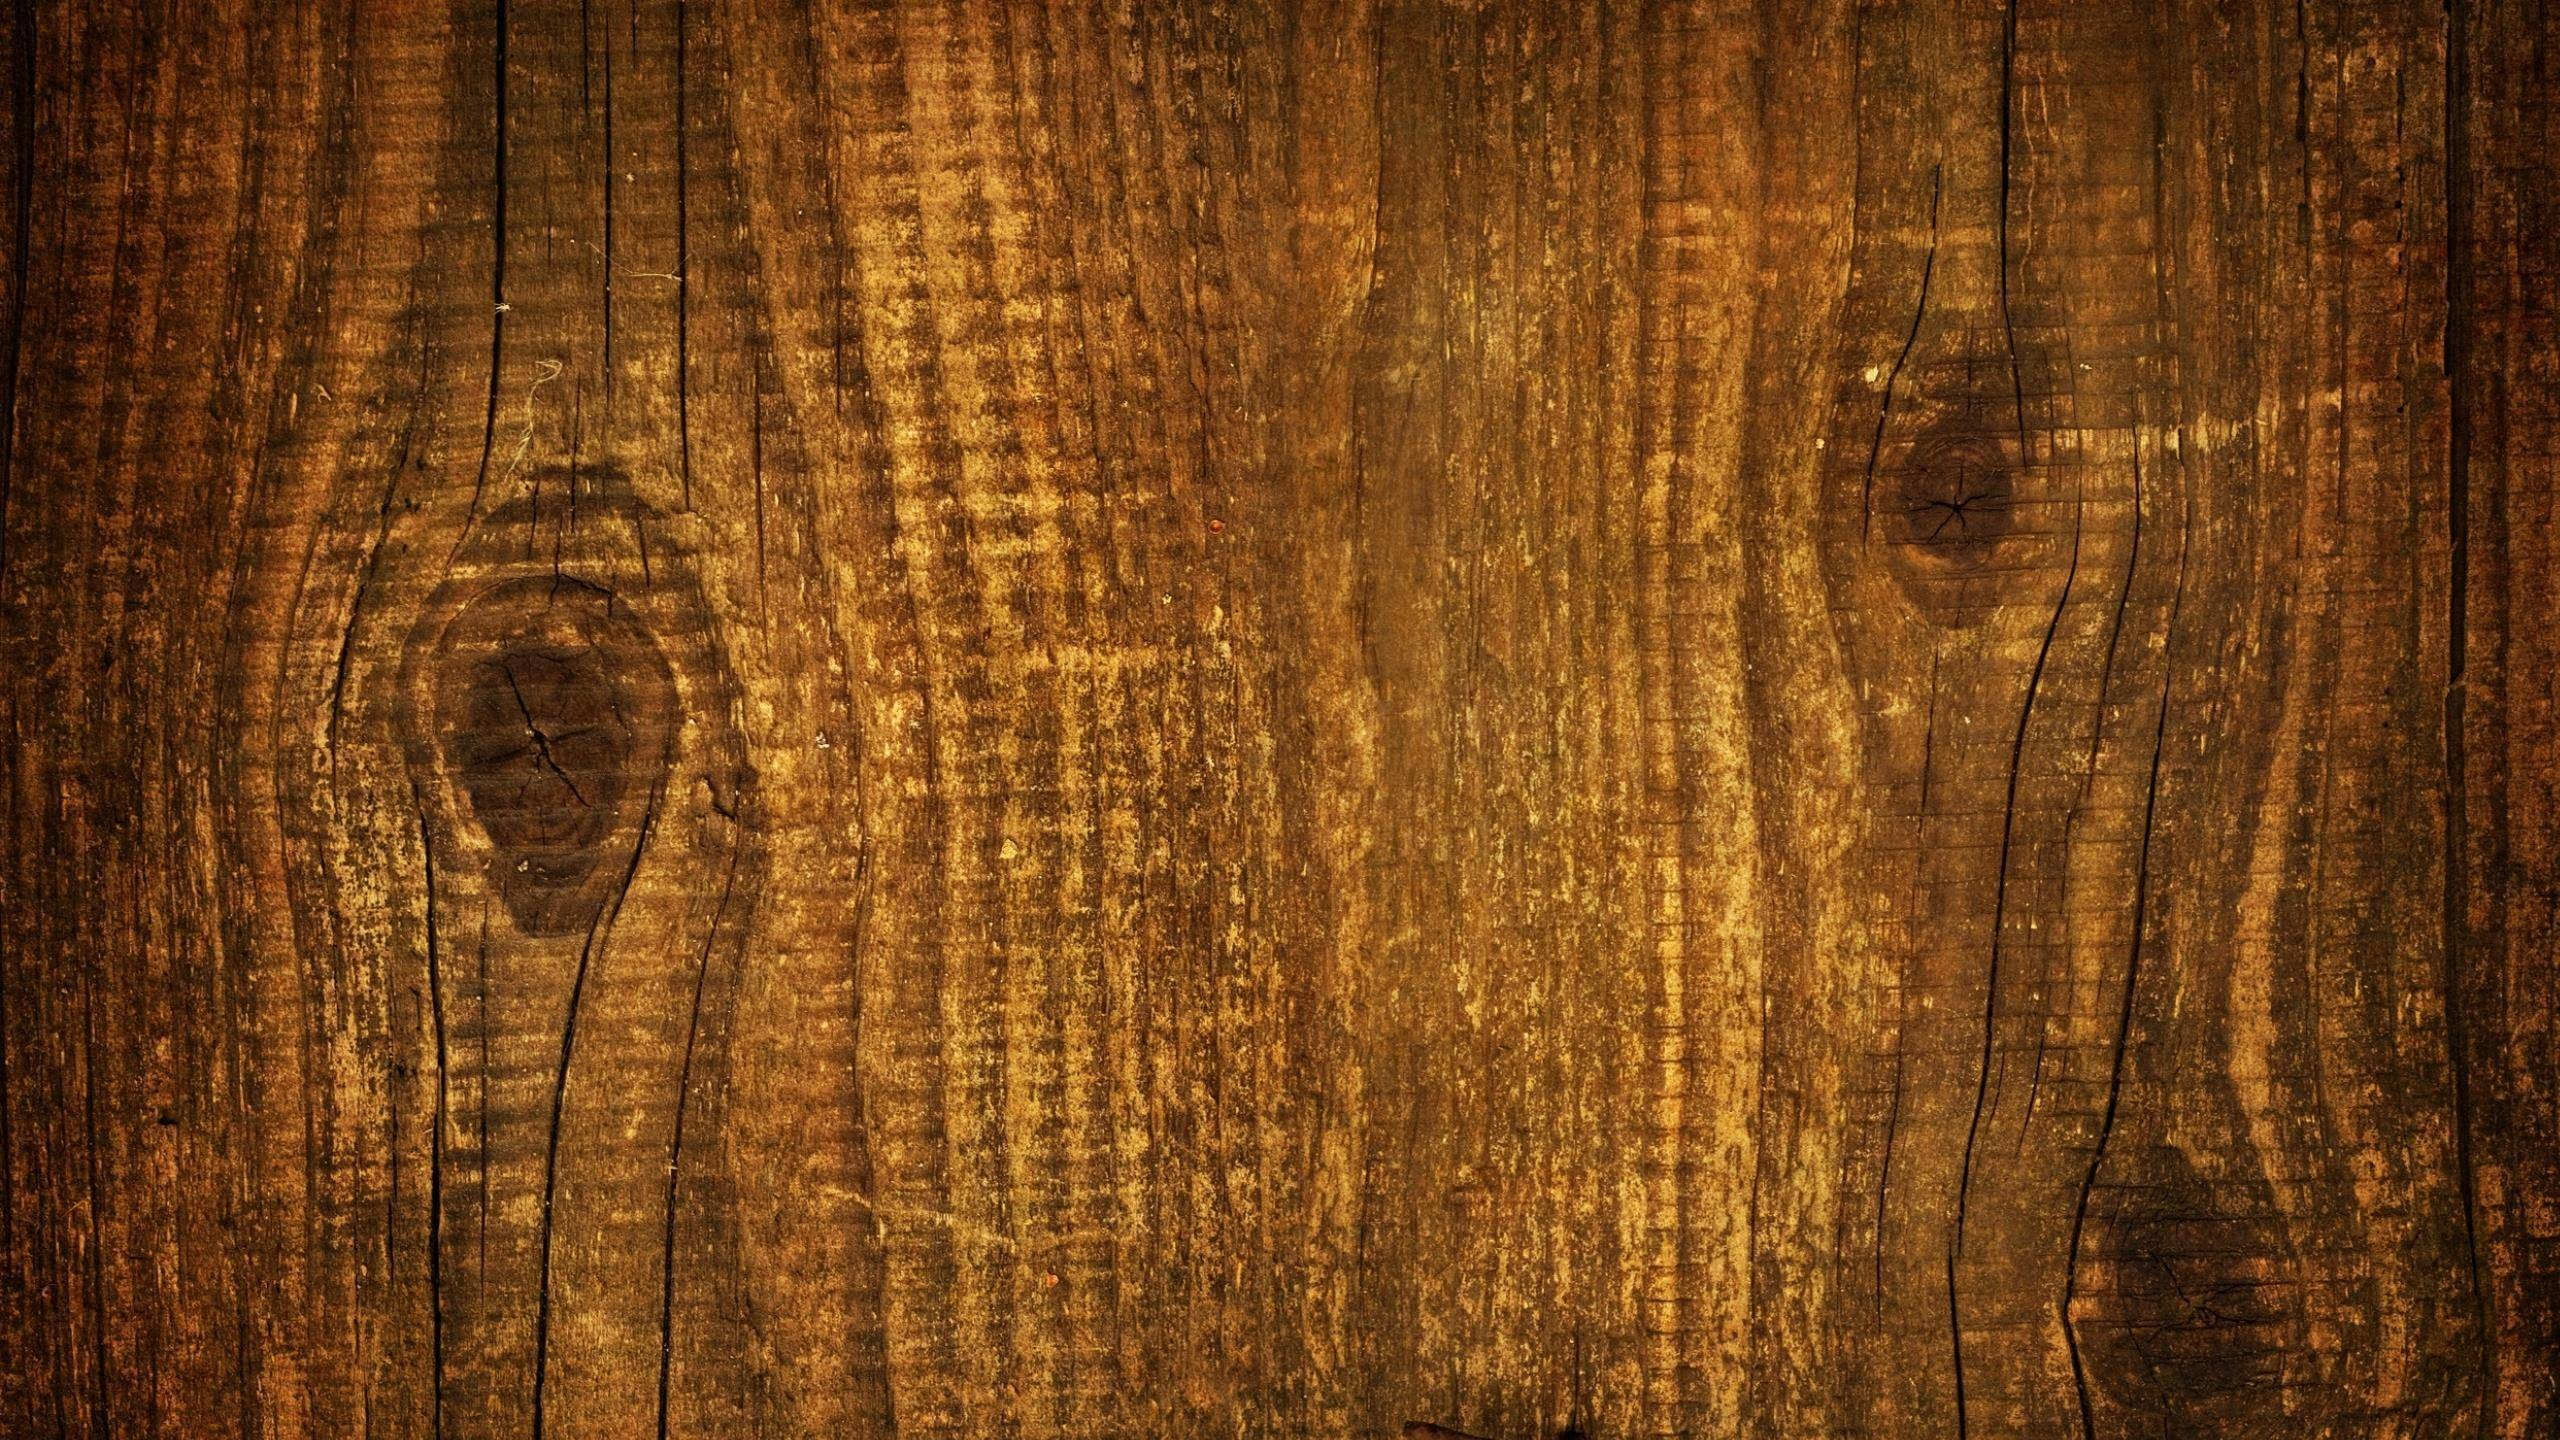 Related Pictures Free Download Wood Grain Texture For Hd Wallpaper .